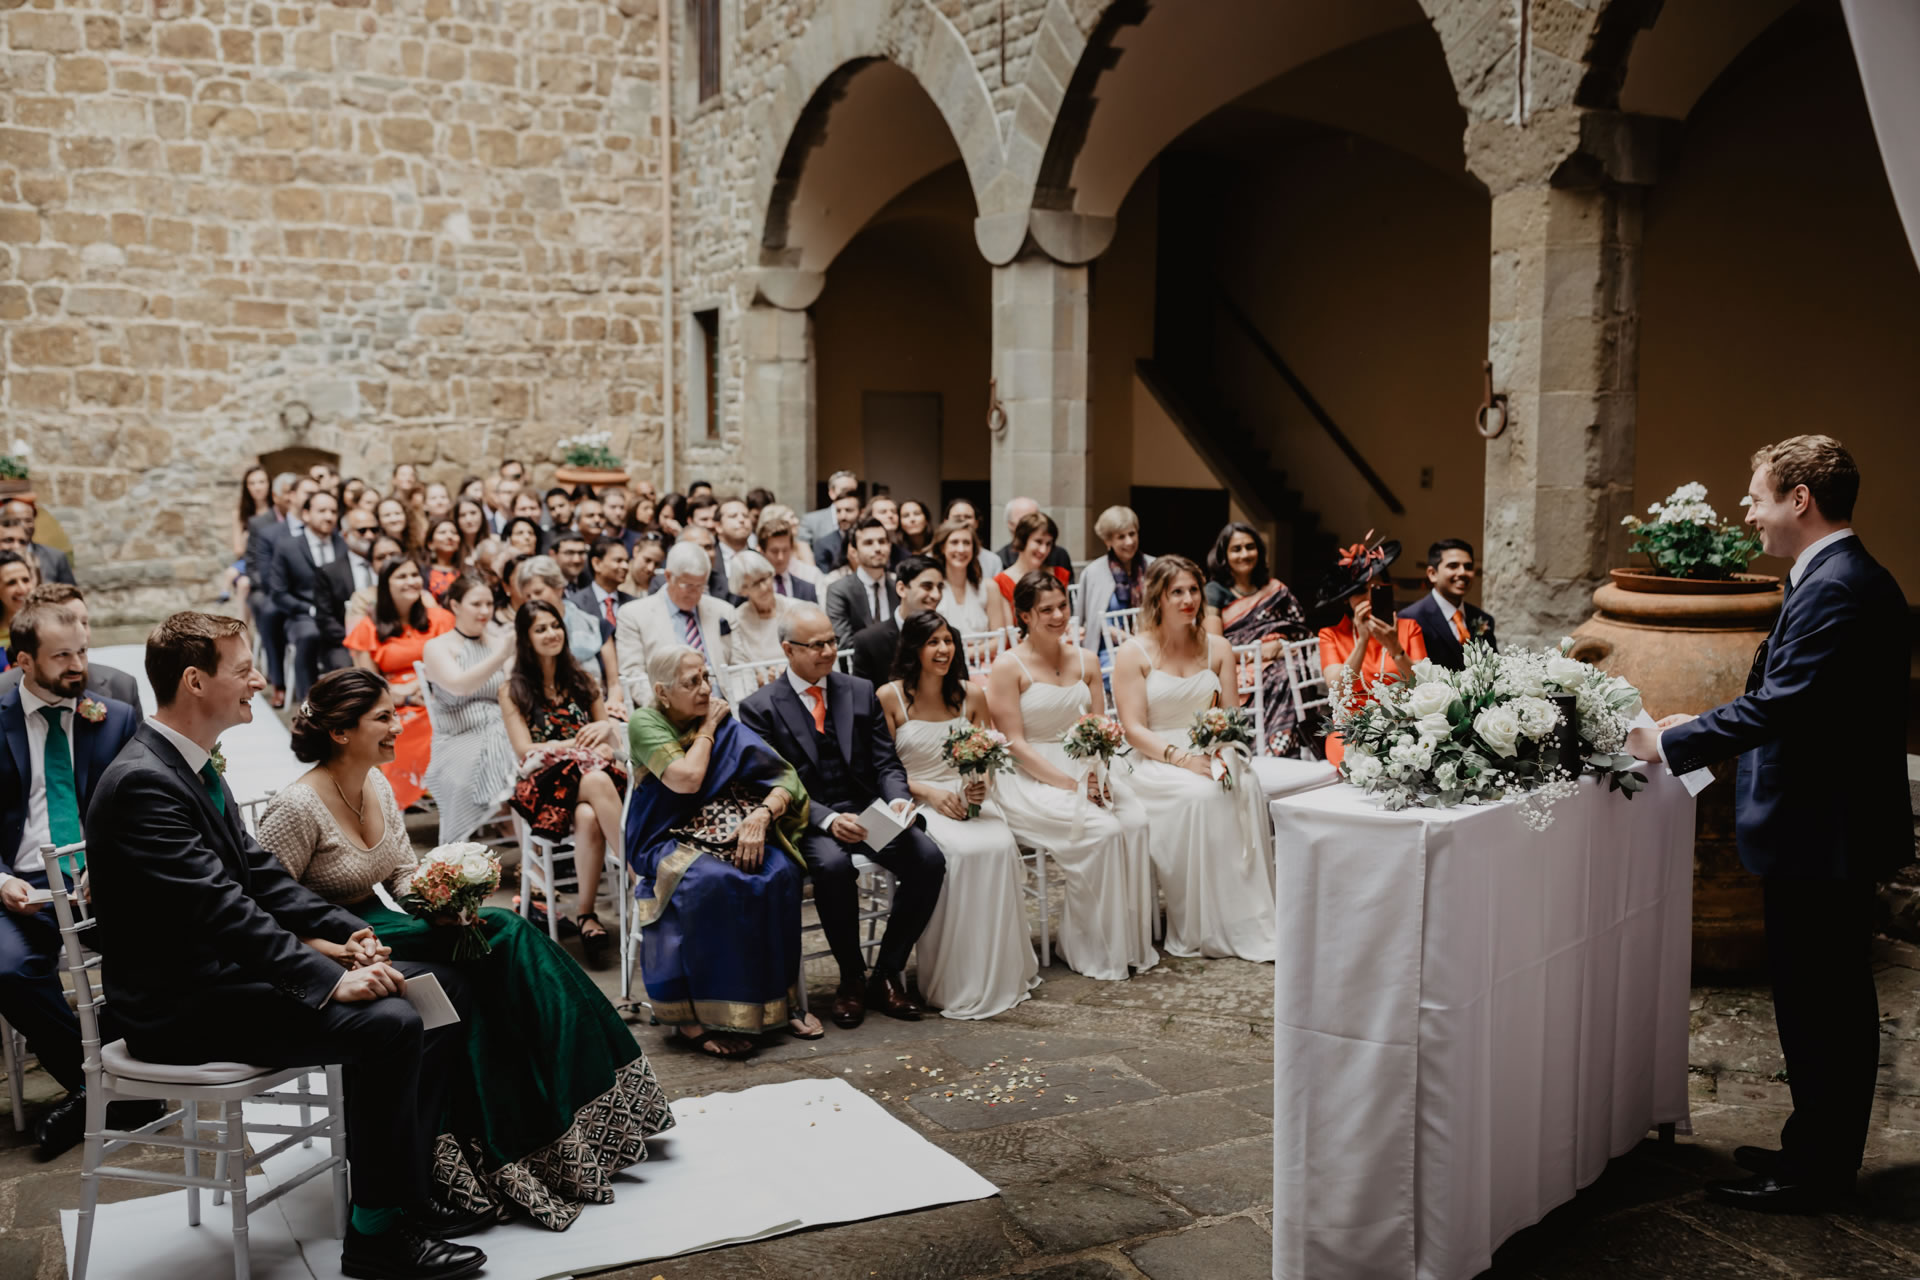 - 46 :: Indian wedding ceremony at Villa Pitiana :: Luxury wedding photography - 45 ::  - 46